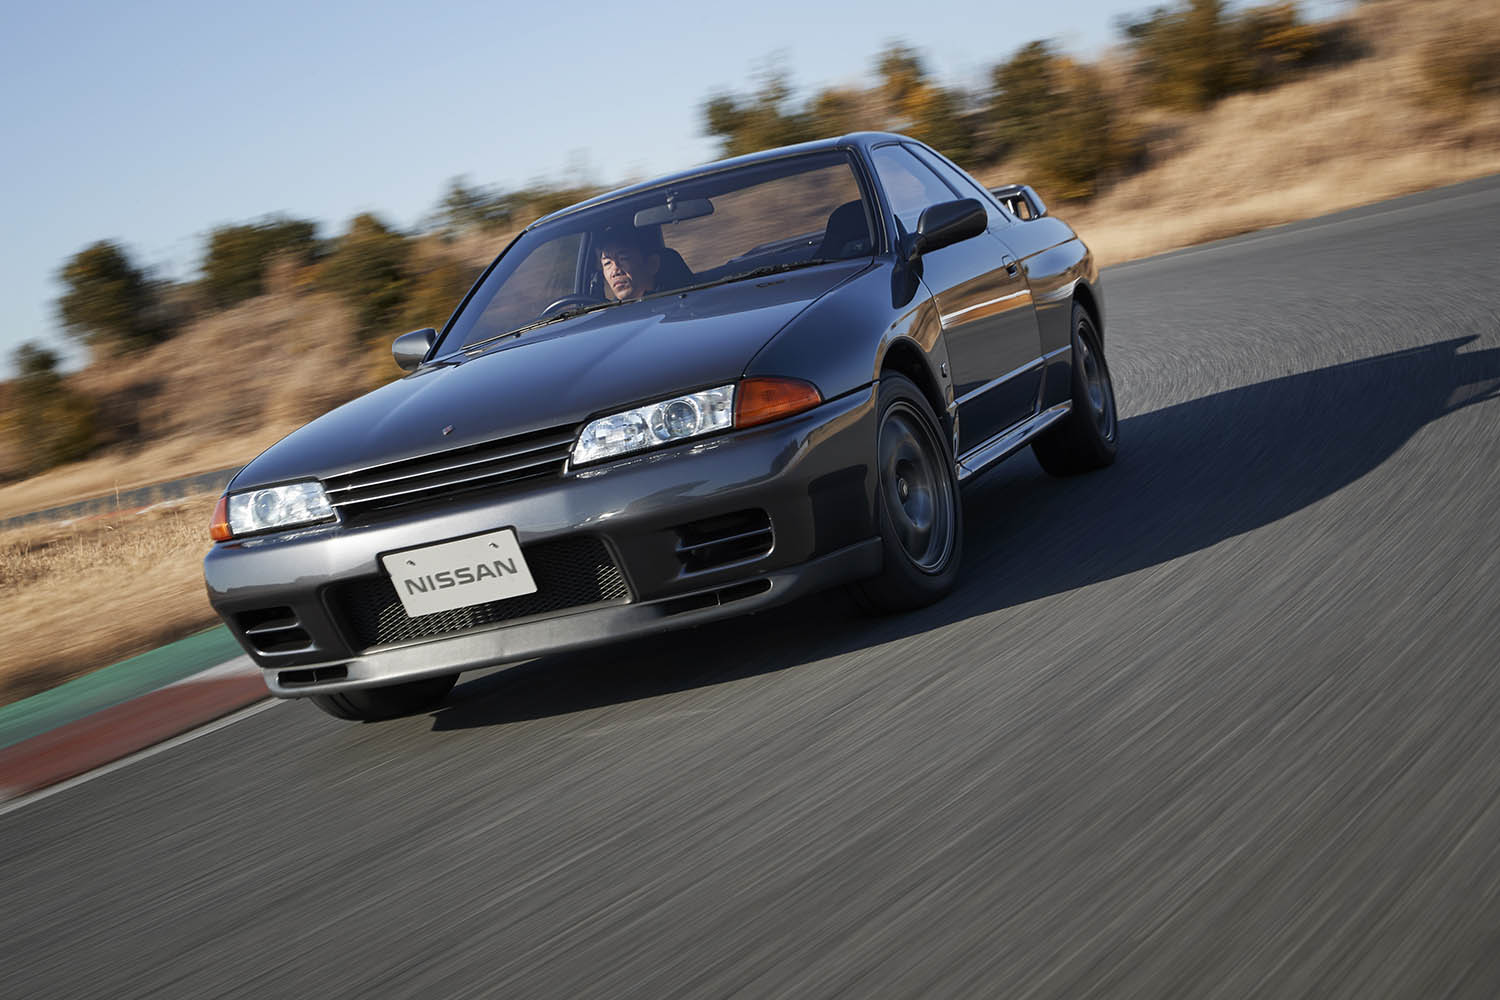 GT-R_BNR32_1989_Driving_09-source.jpg